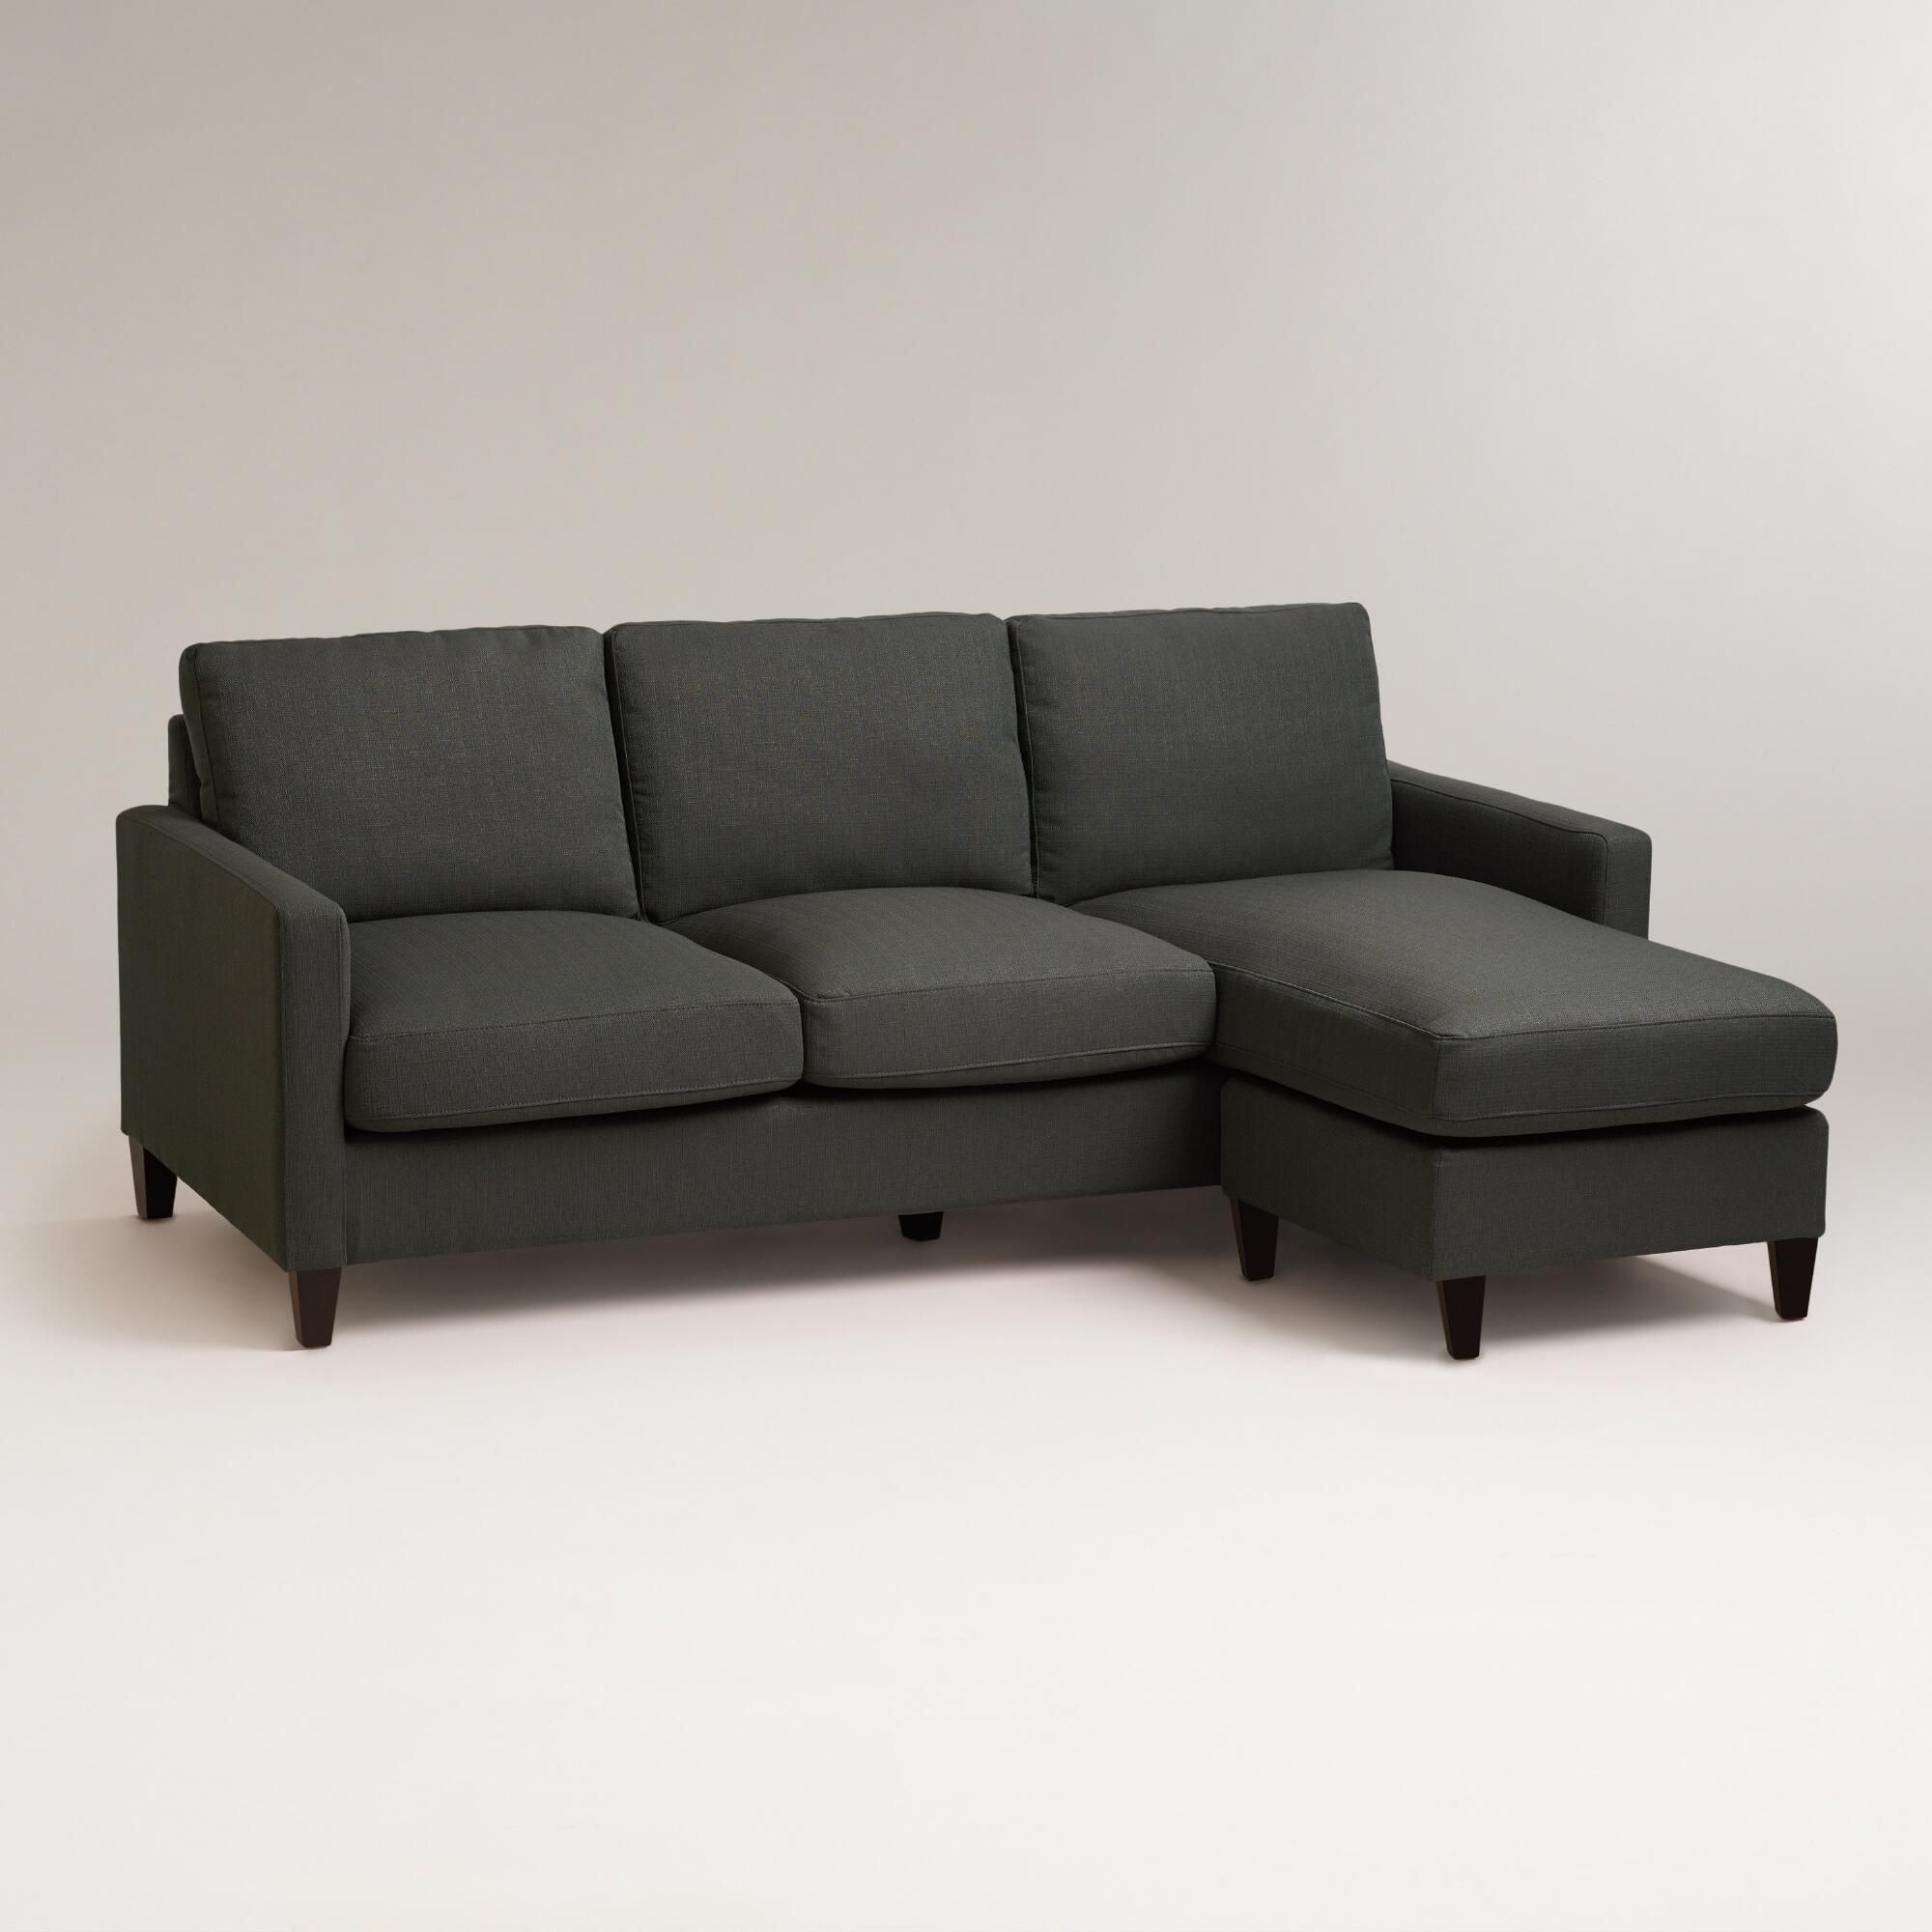 Our Charcoal Abbott Sofa Comes With A Chaise Frame That Can Be Positioned On Either Side